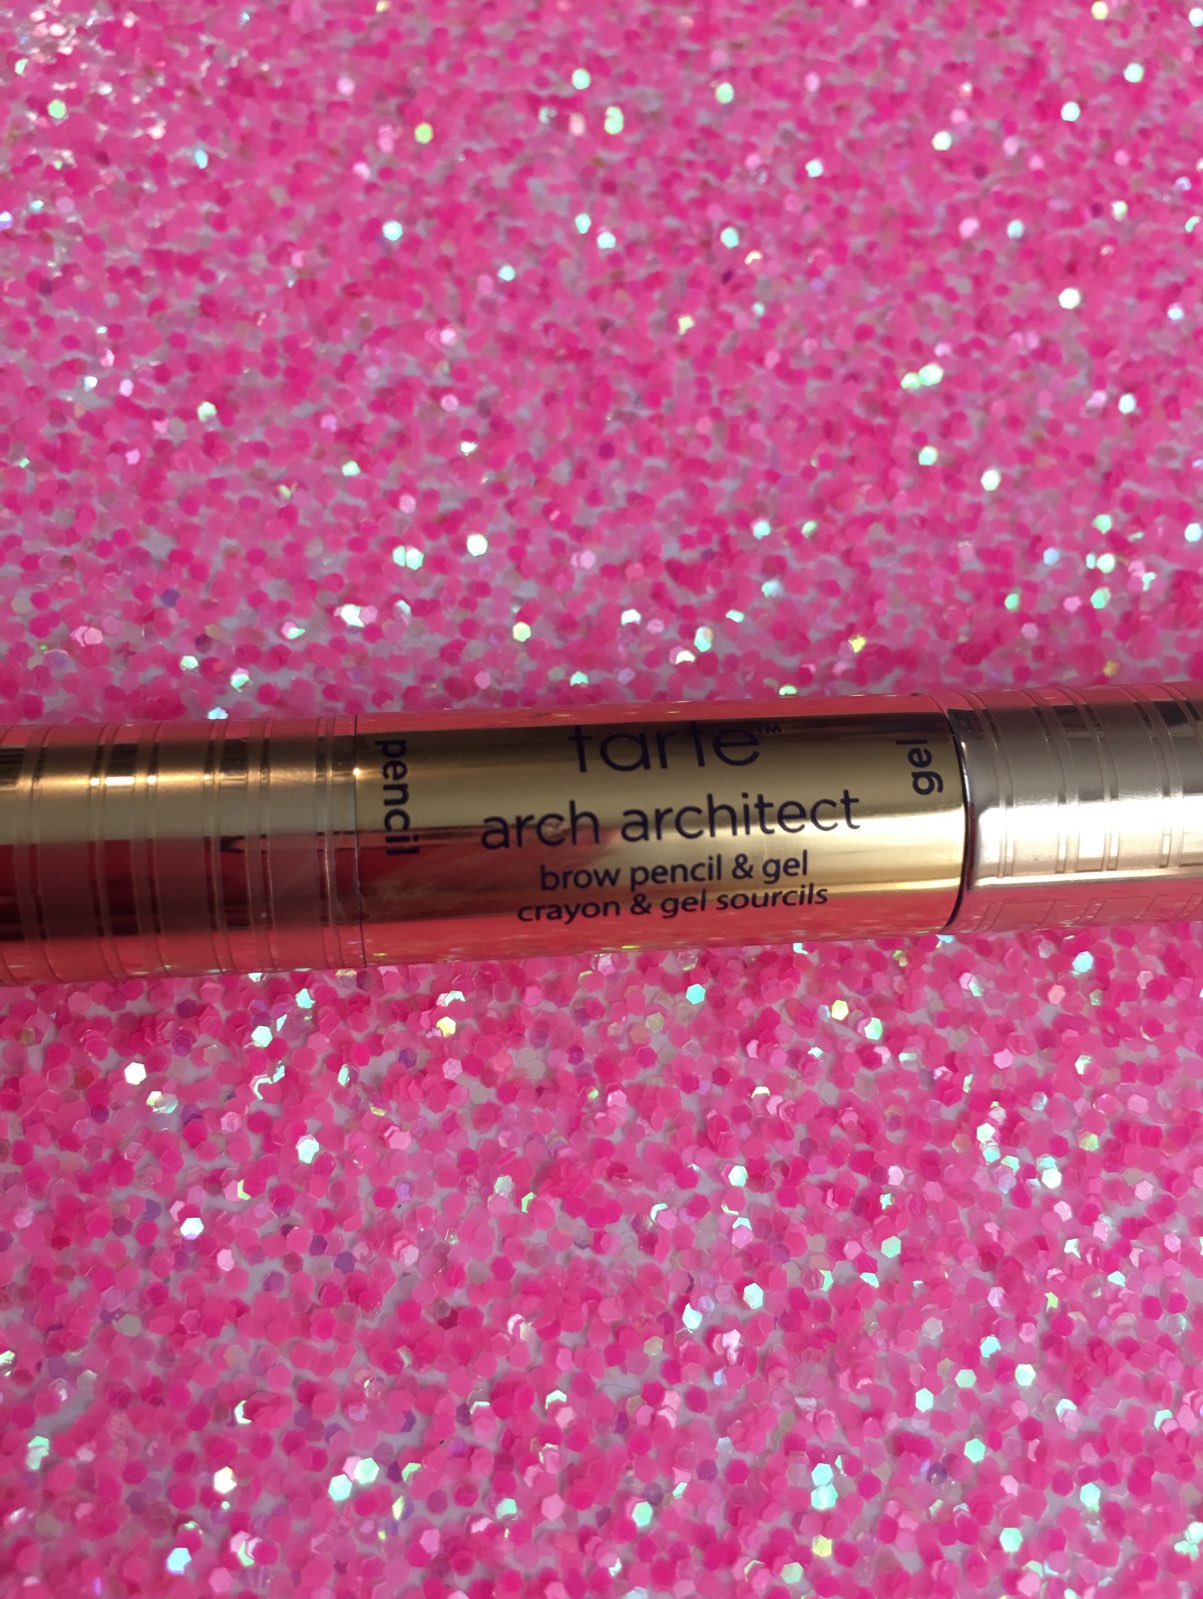 Arch Architect Brow Pencil & Gel by Tarte #14